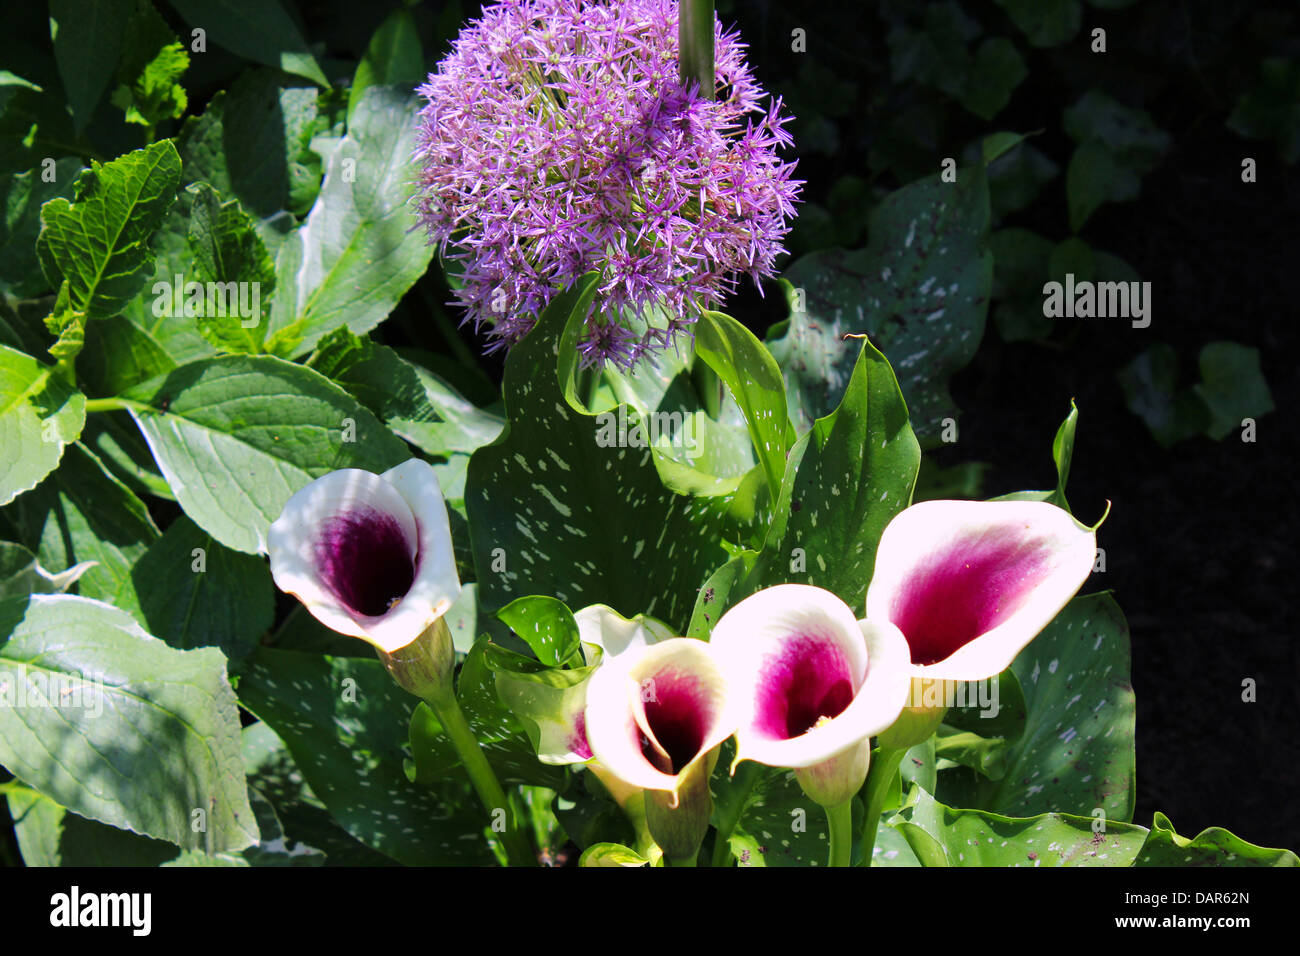 The Globe thistle flower comes in purple and white. The Calla Lily is a perennial plant and is also called Arum - Stock Image